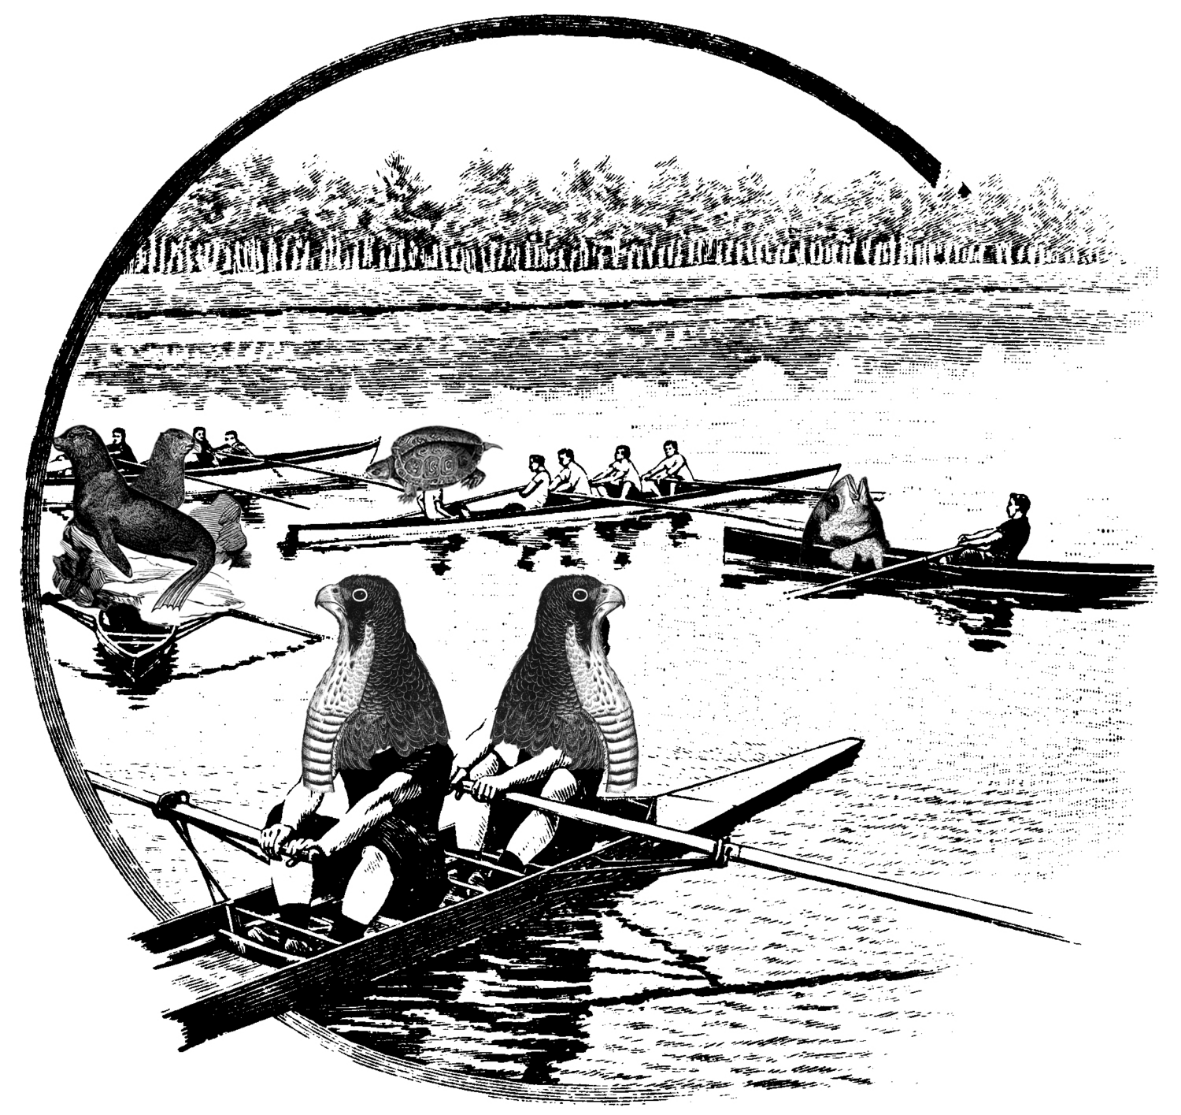 Explore the Bronx River in a Handbuilt Boat   Paddle by egrets, osprey nests, and herons. Led by the experienced rowers at Rocking the Boat.  Saturday, September 14, 2014: 11am - 1pm   $35. $24 for members.